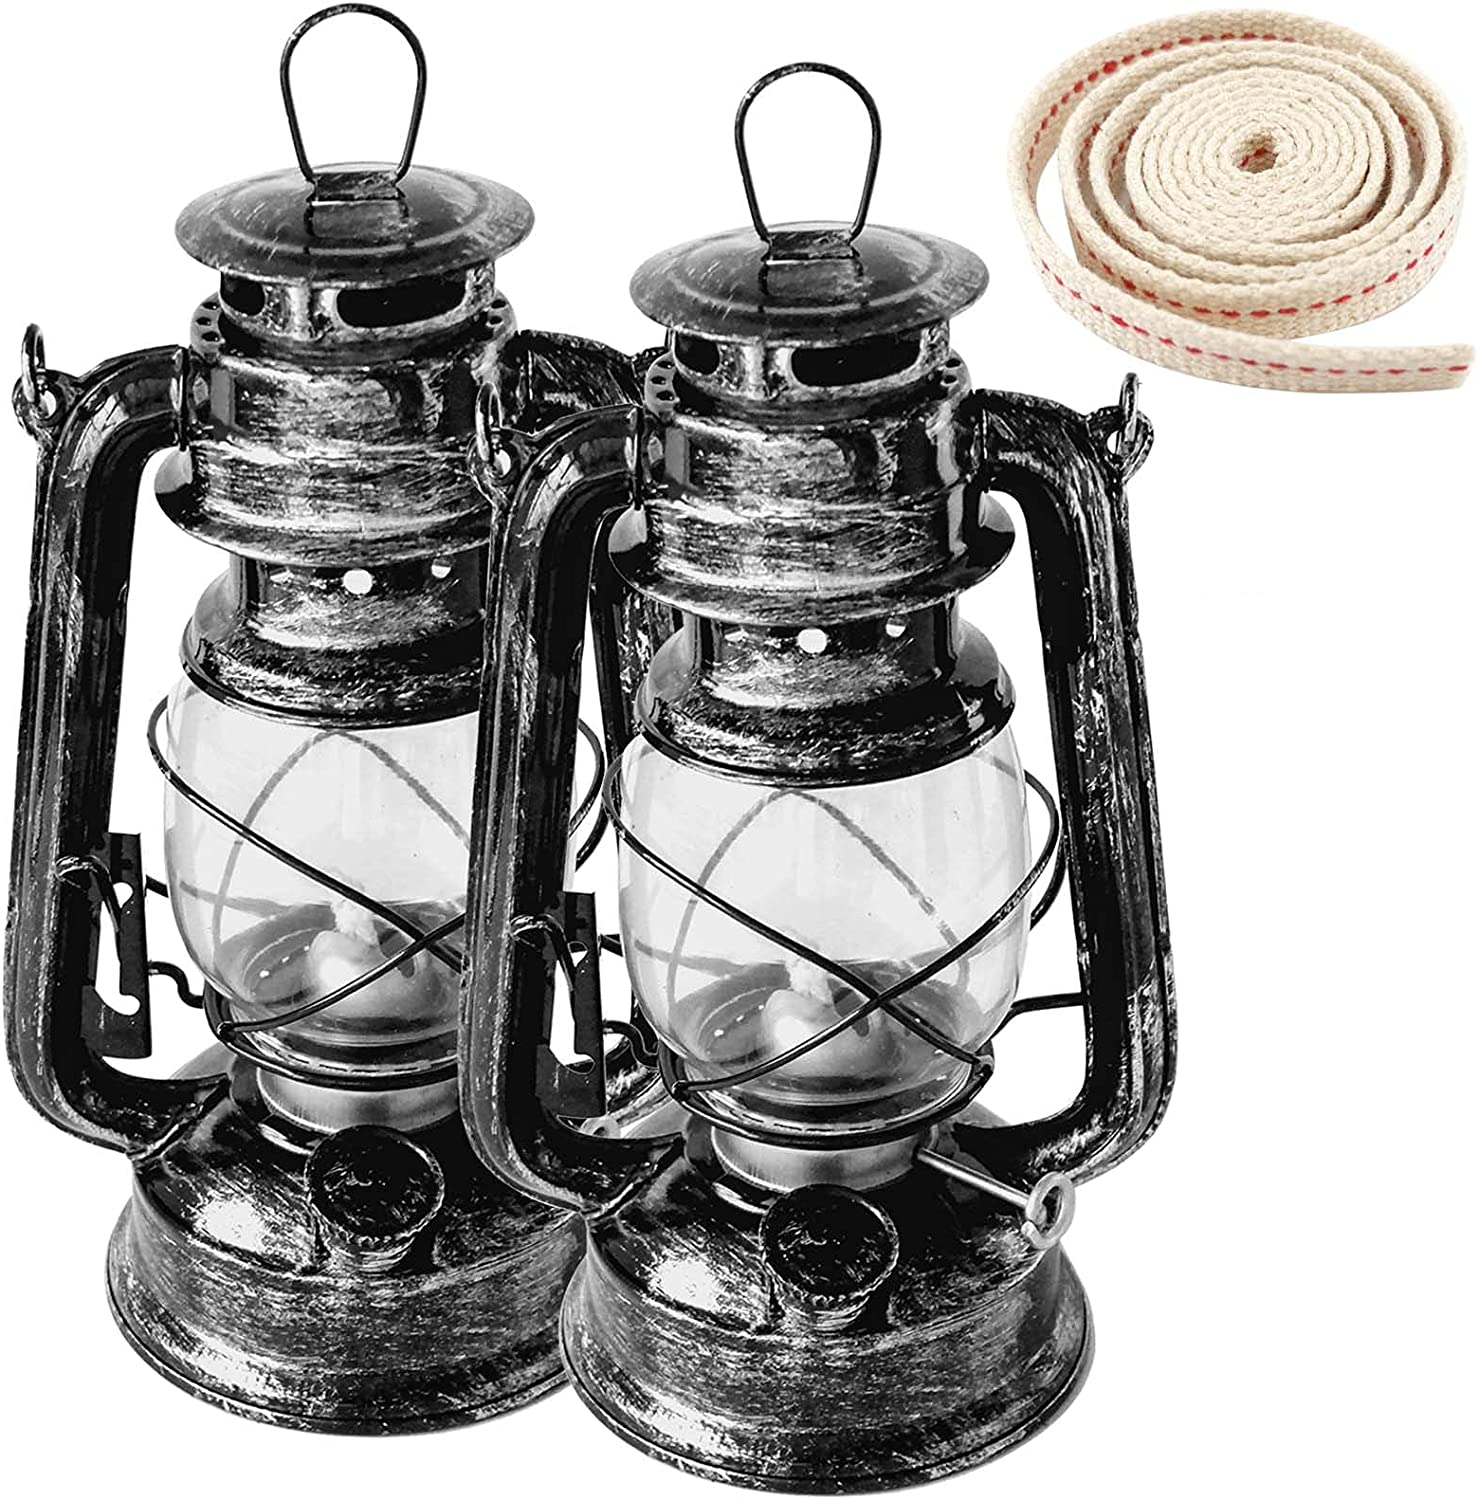 Rustic Kerosene Lamp 2 Oil Lamps sold out and specialty shop of Bu Wick 1Roll Hurricane